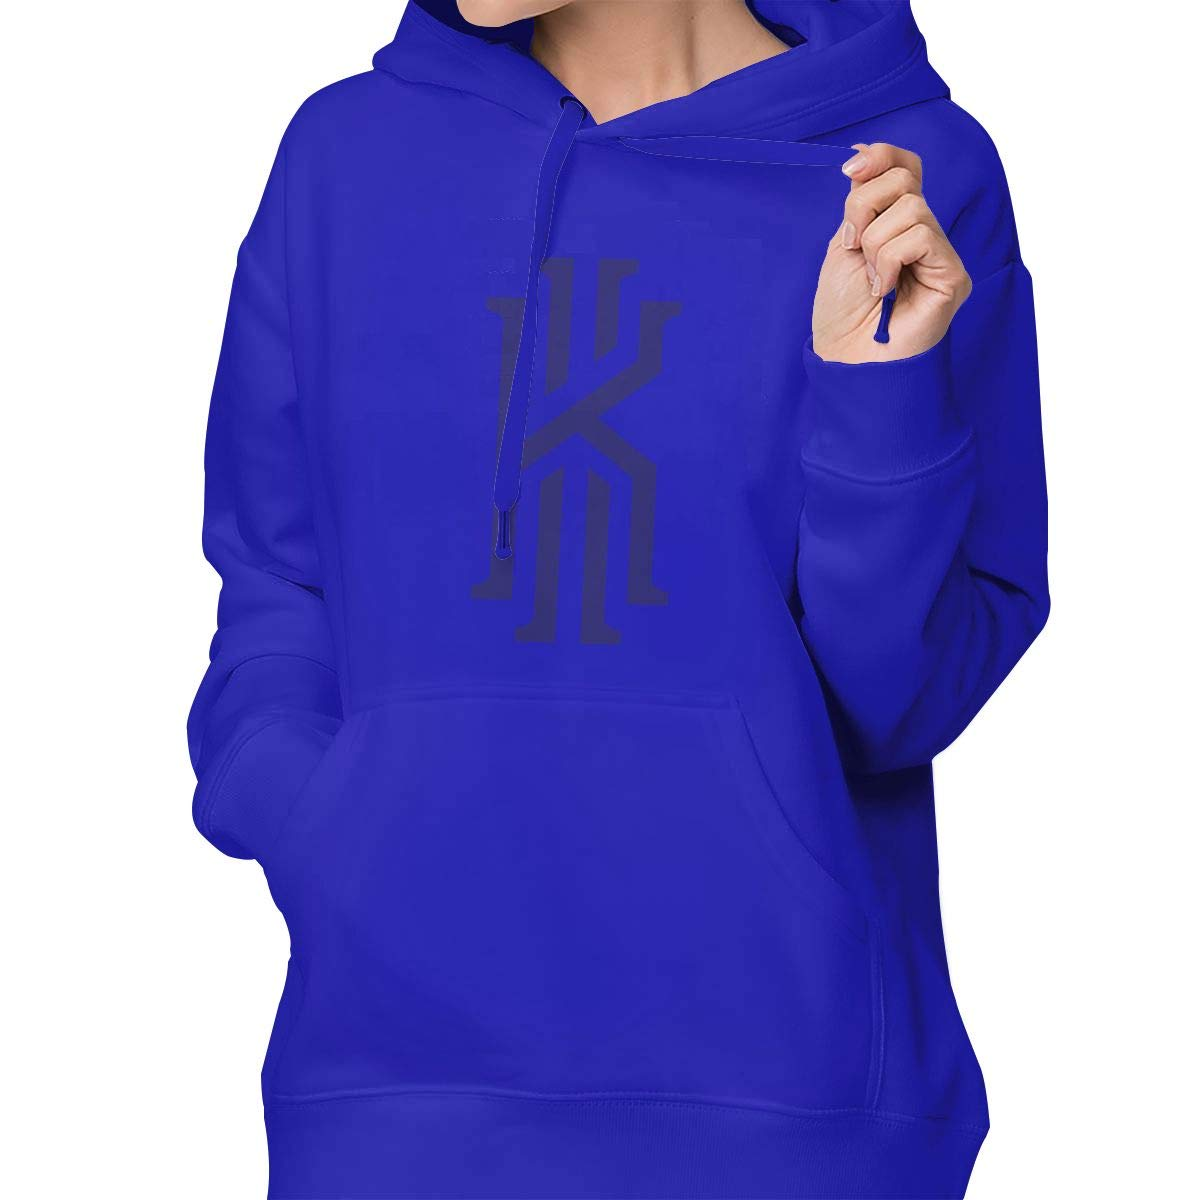 Womens Pullover Hoodie Kyrie K Irving Shirts Shirt Hooded Sweatshirt Hoodies for Women Girls Clothes Outdoor Sport Tops Blue S